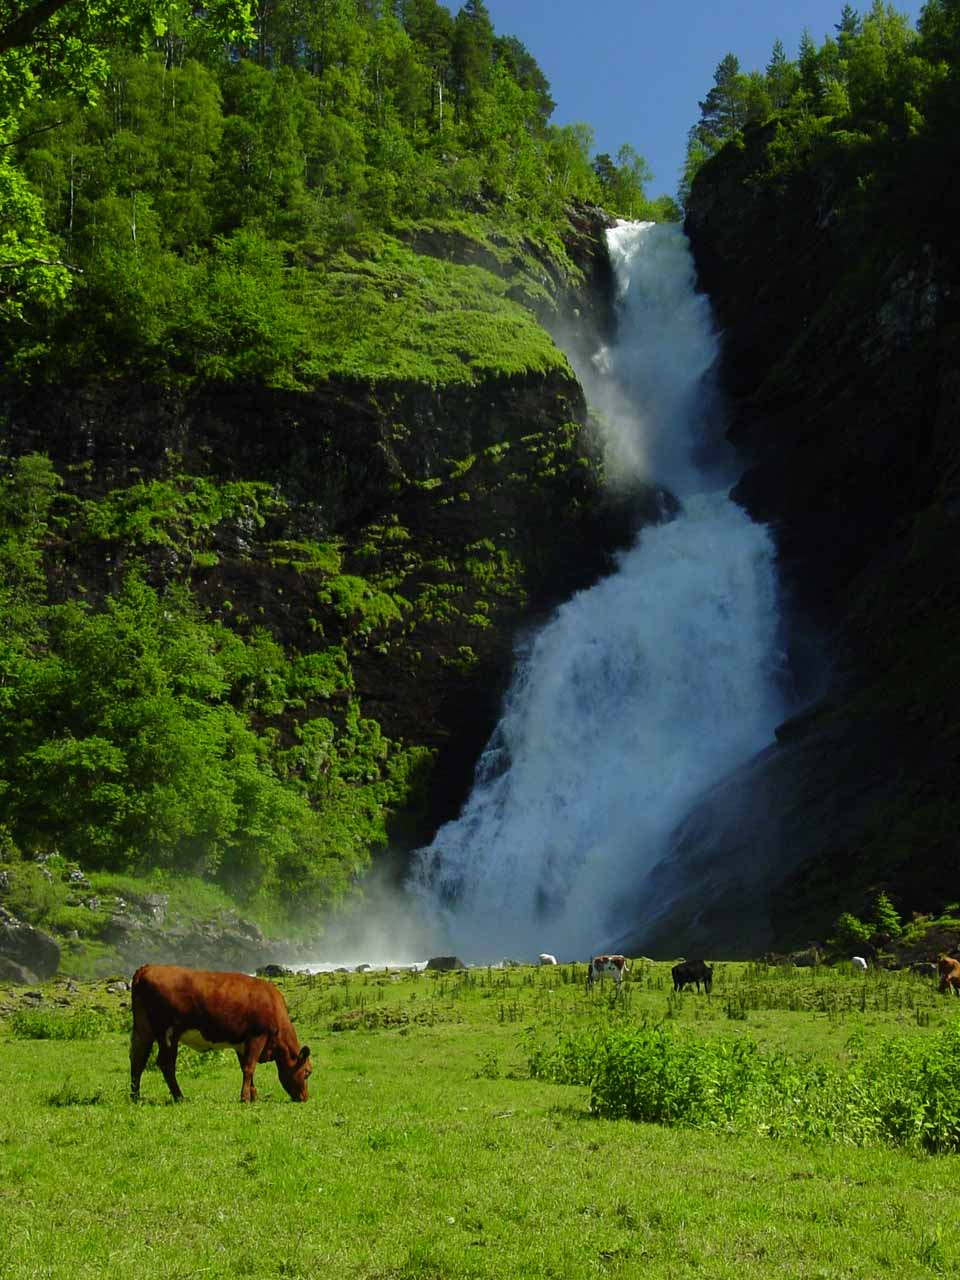 View of Huldrefossen with a cow grazing right in front of it